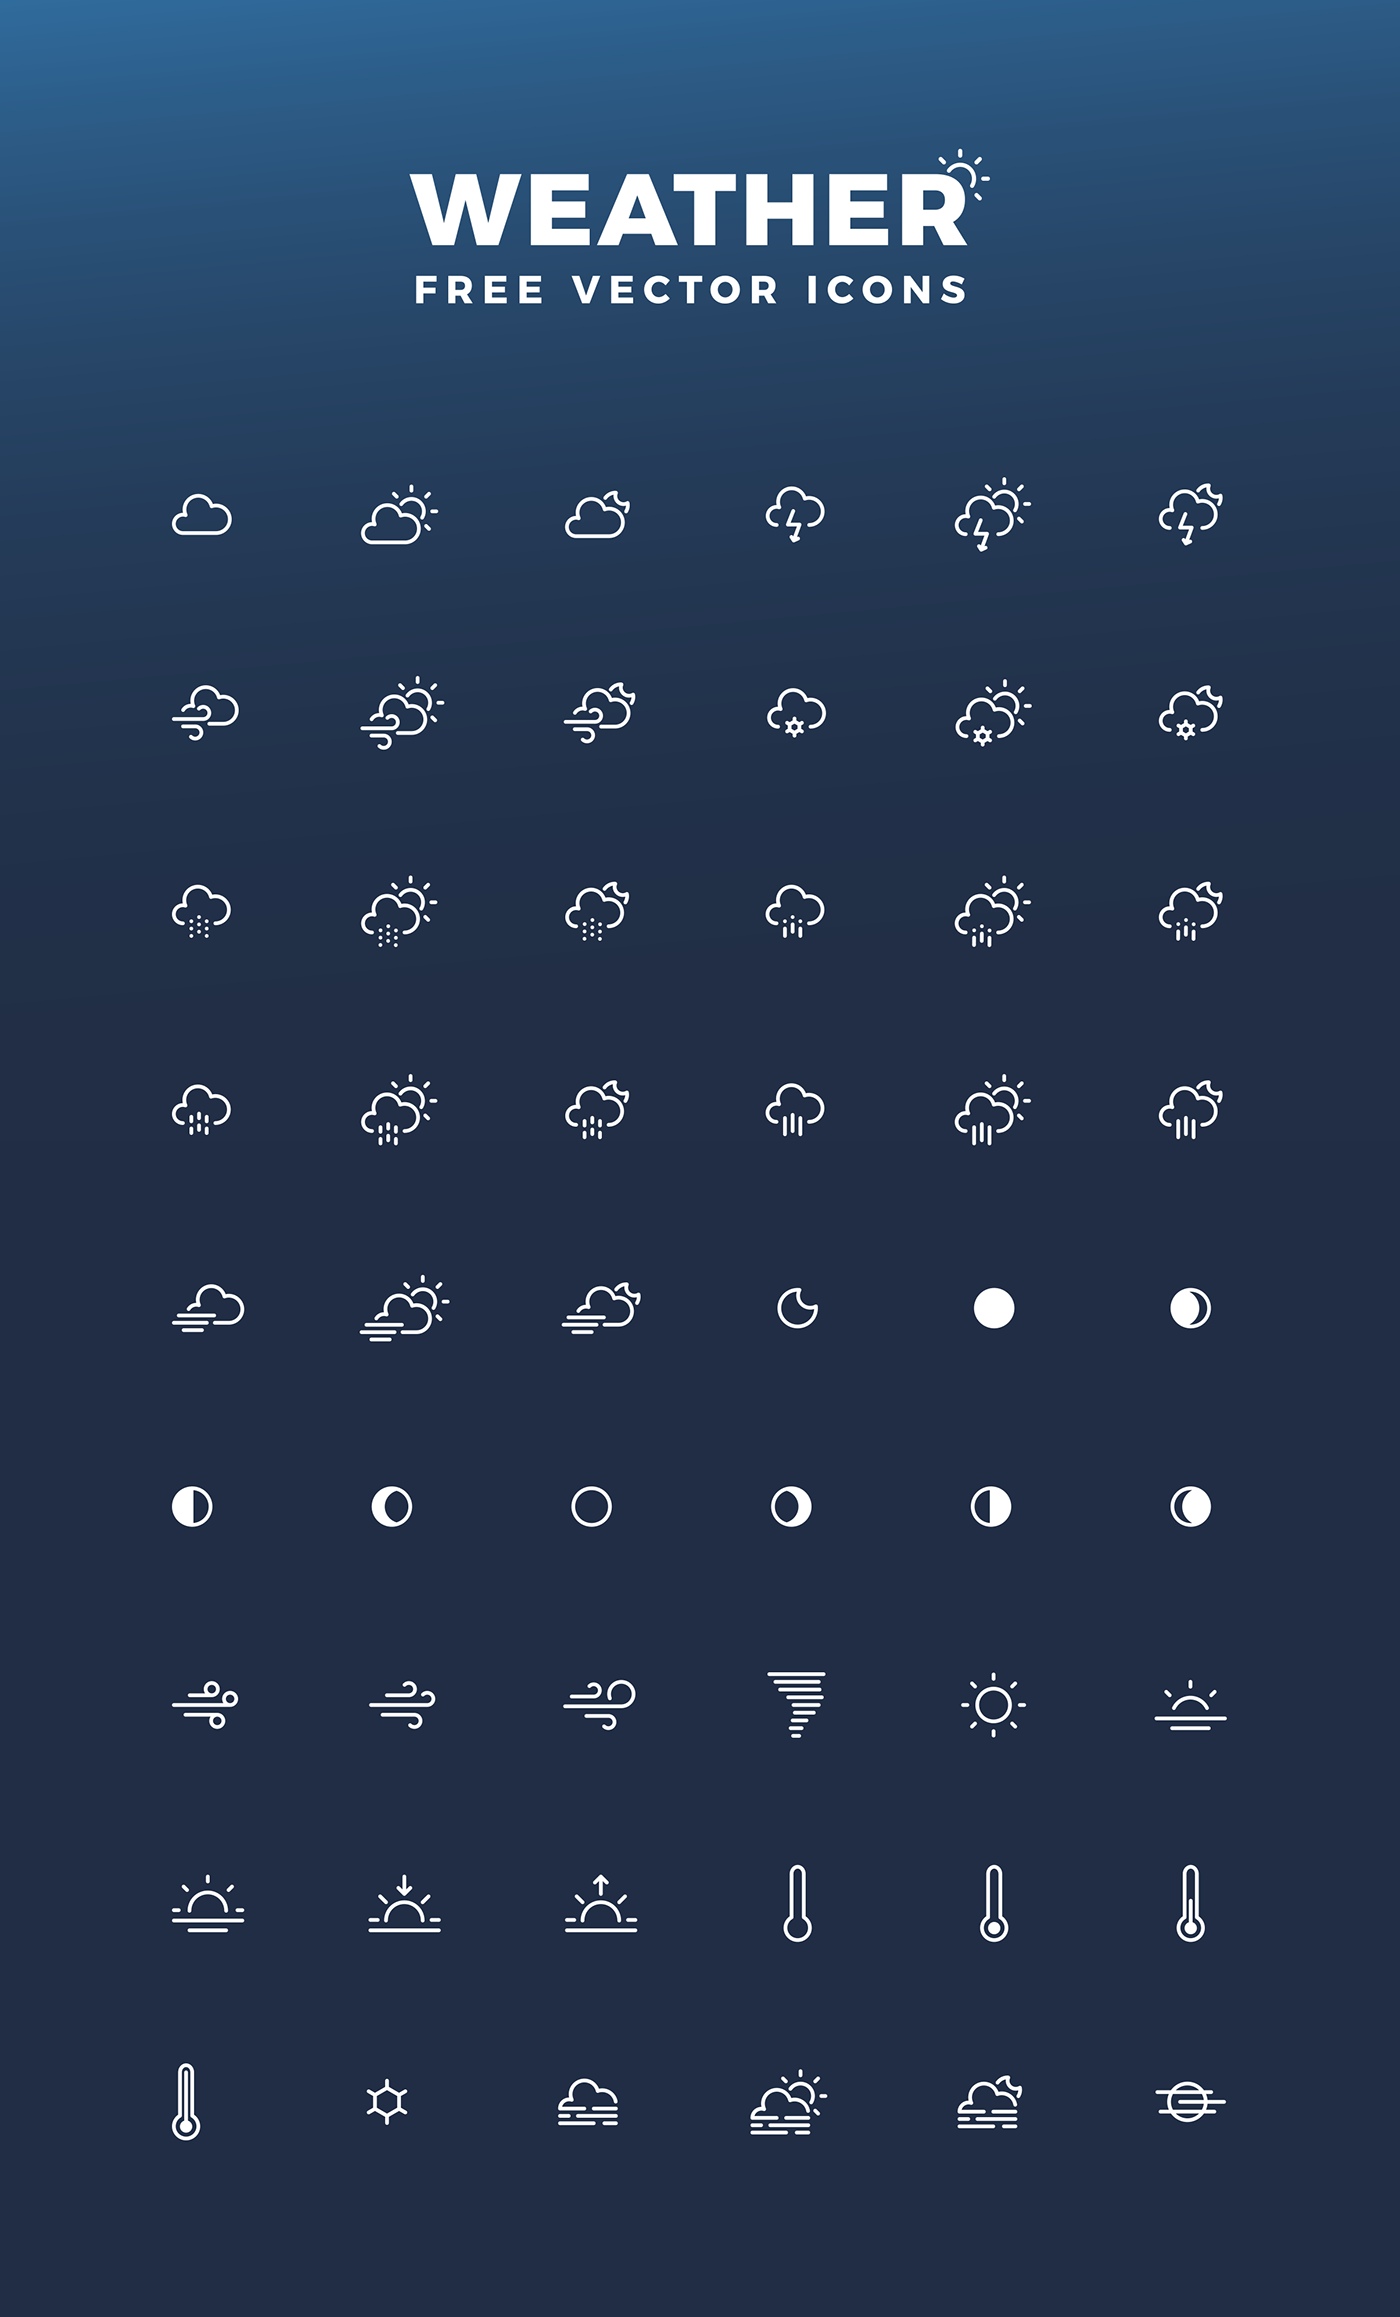 free-weather-iconsets